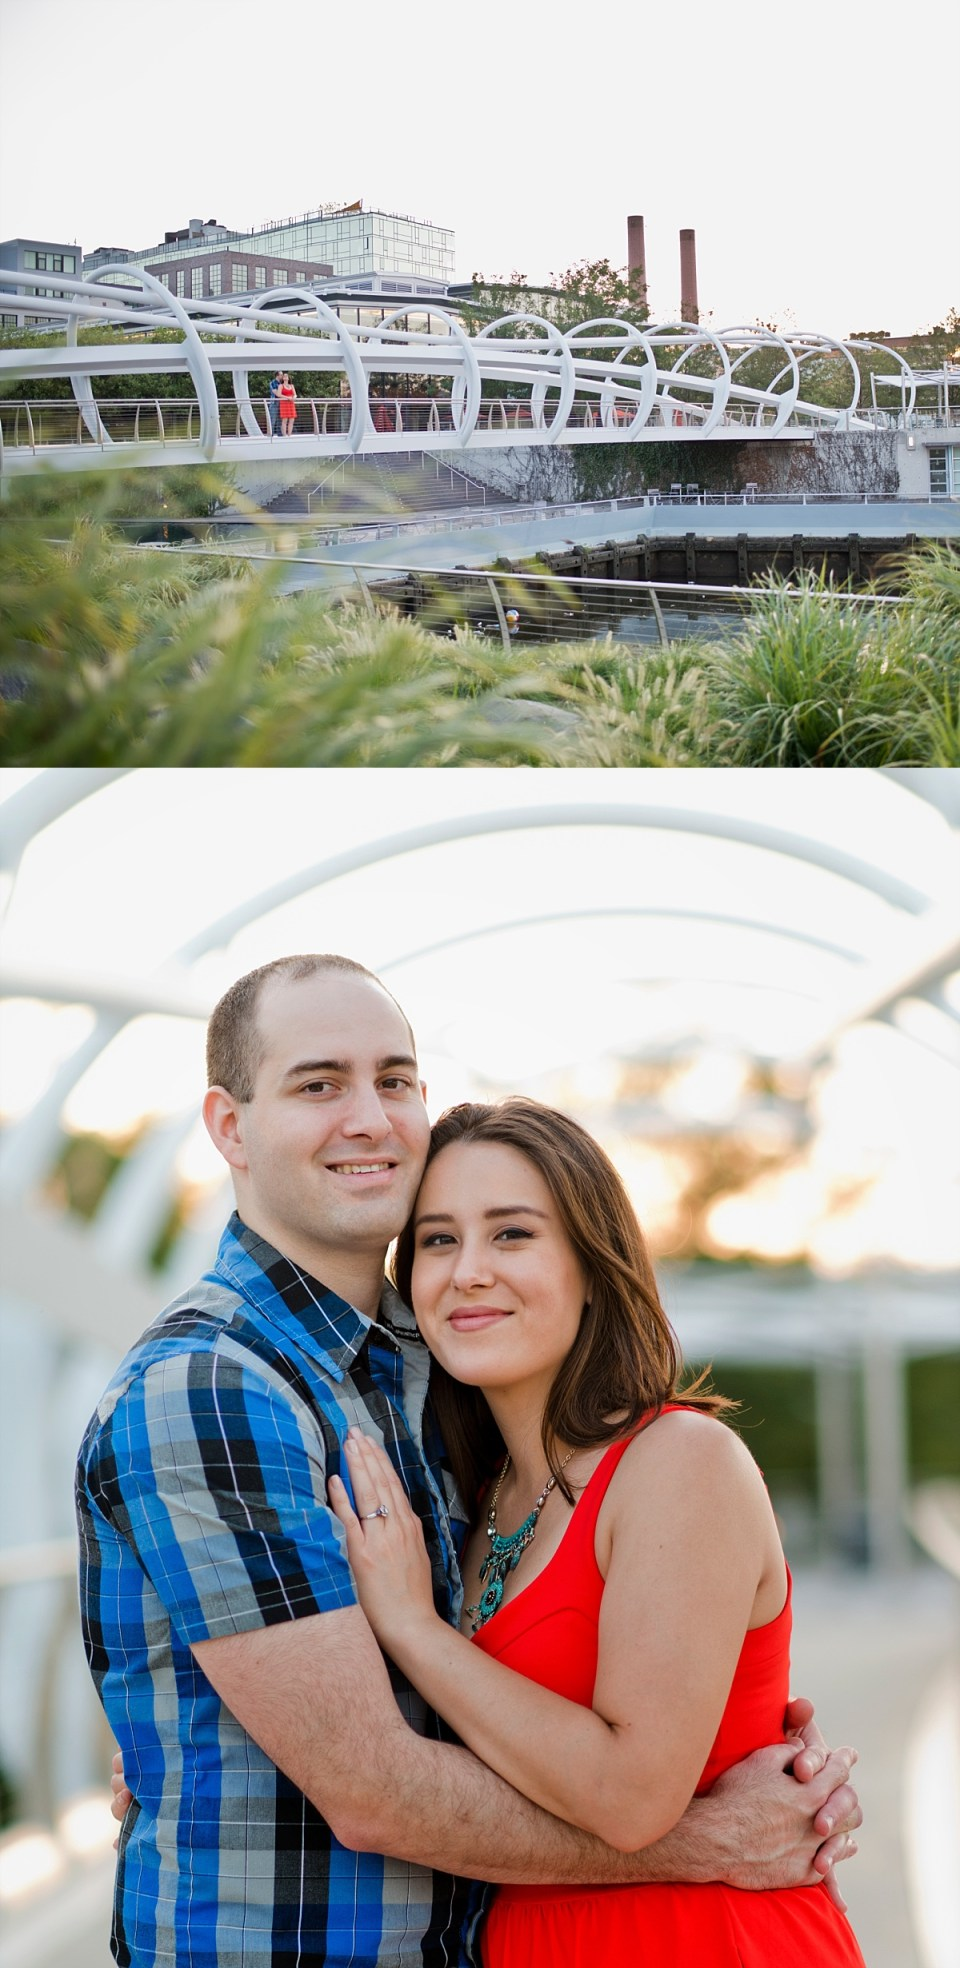 Navy Yard DC, Yards Park, Washington DC Engagement Session by Erin Tetterton Photography